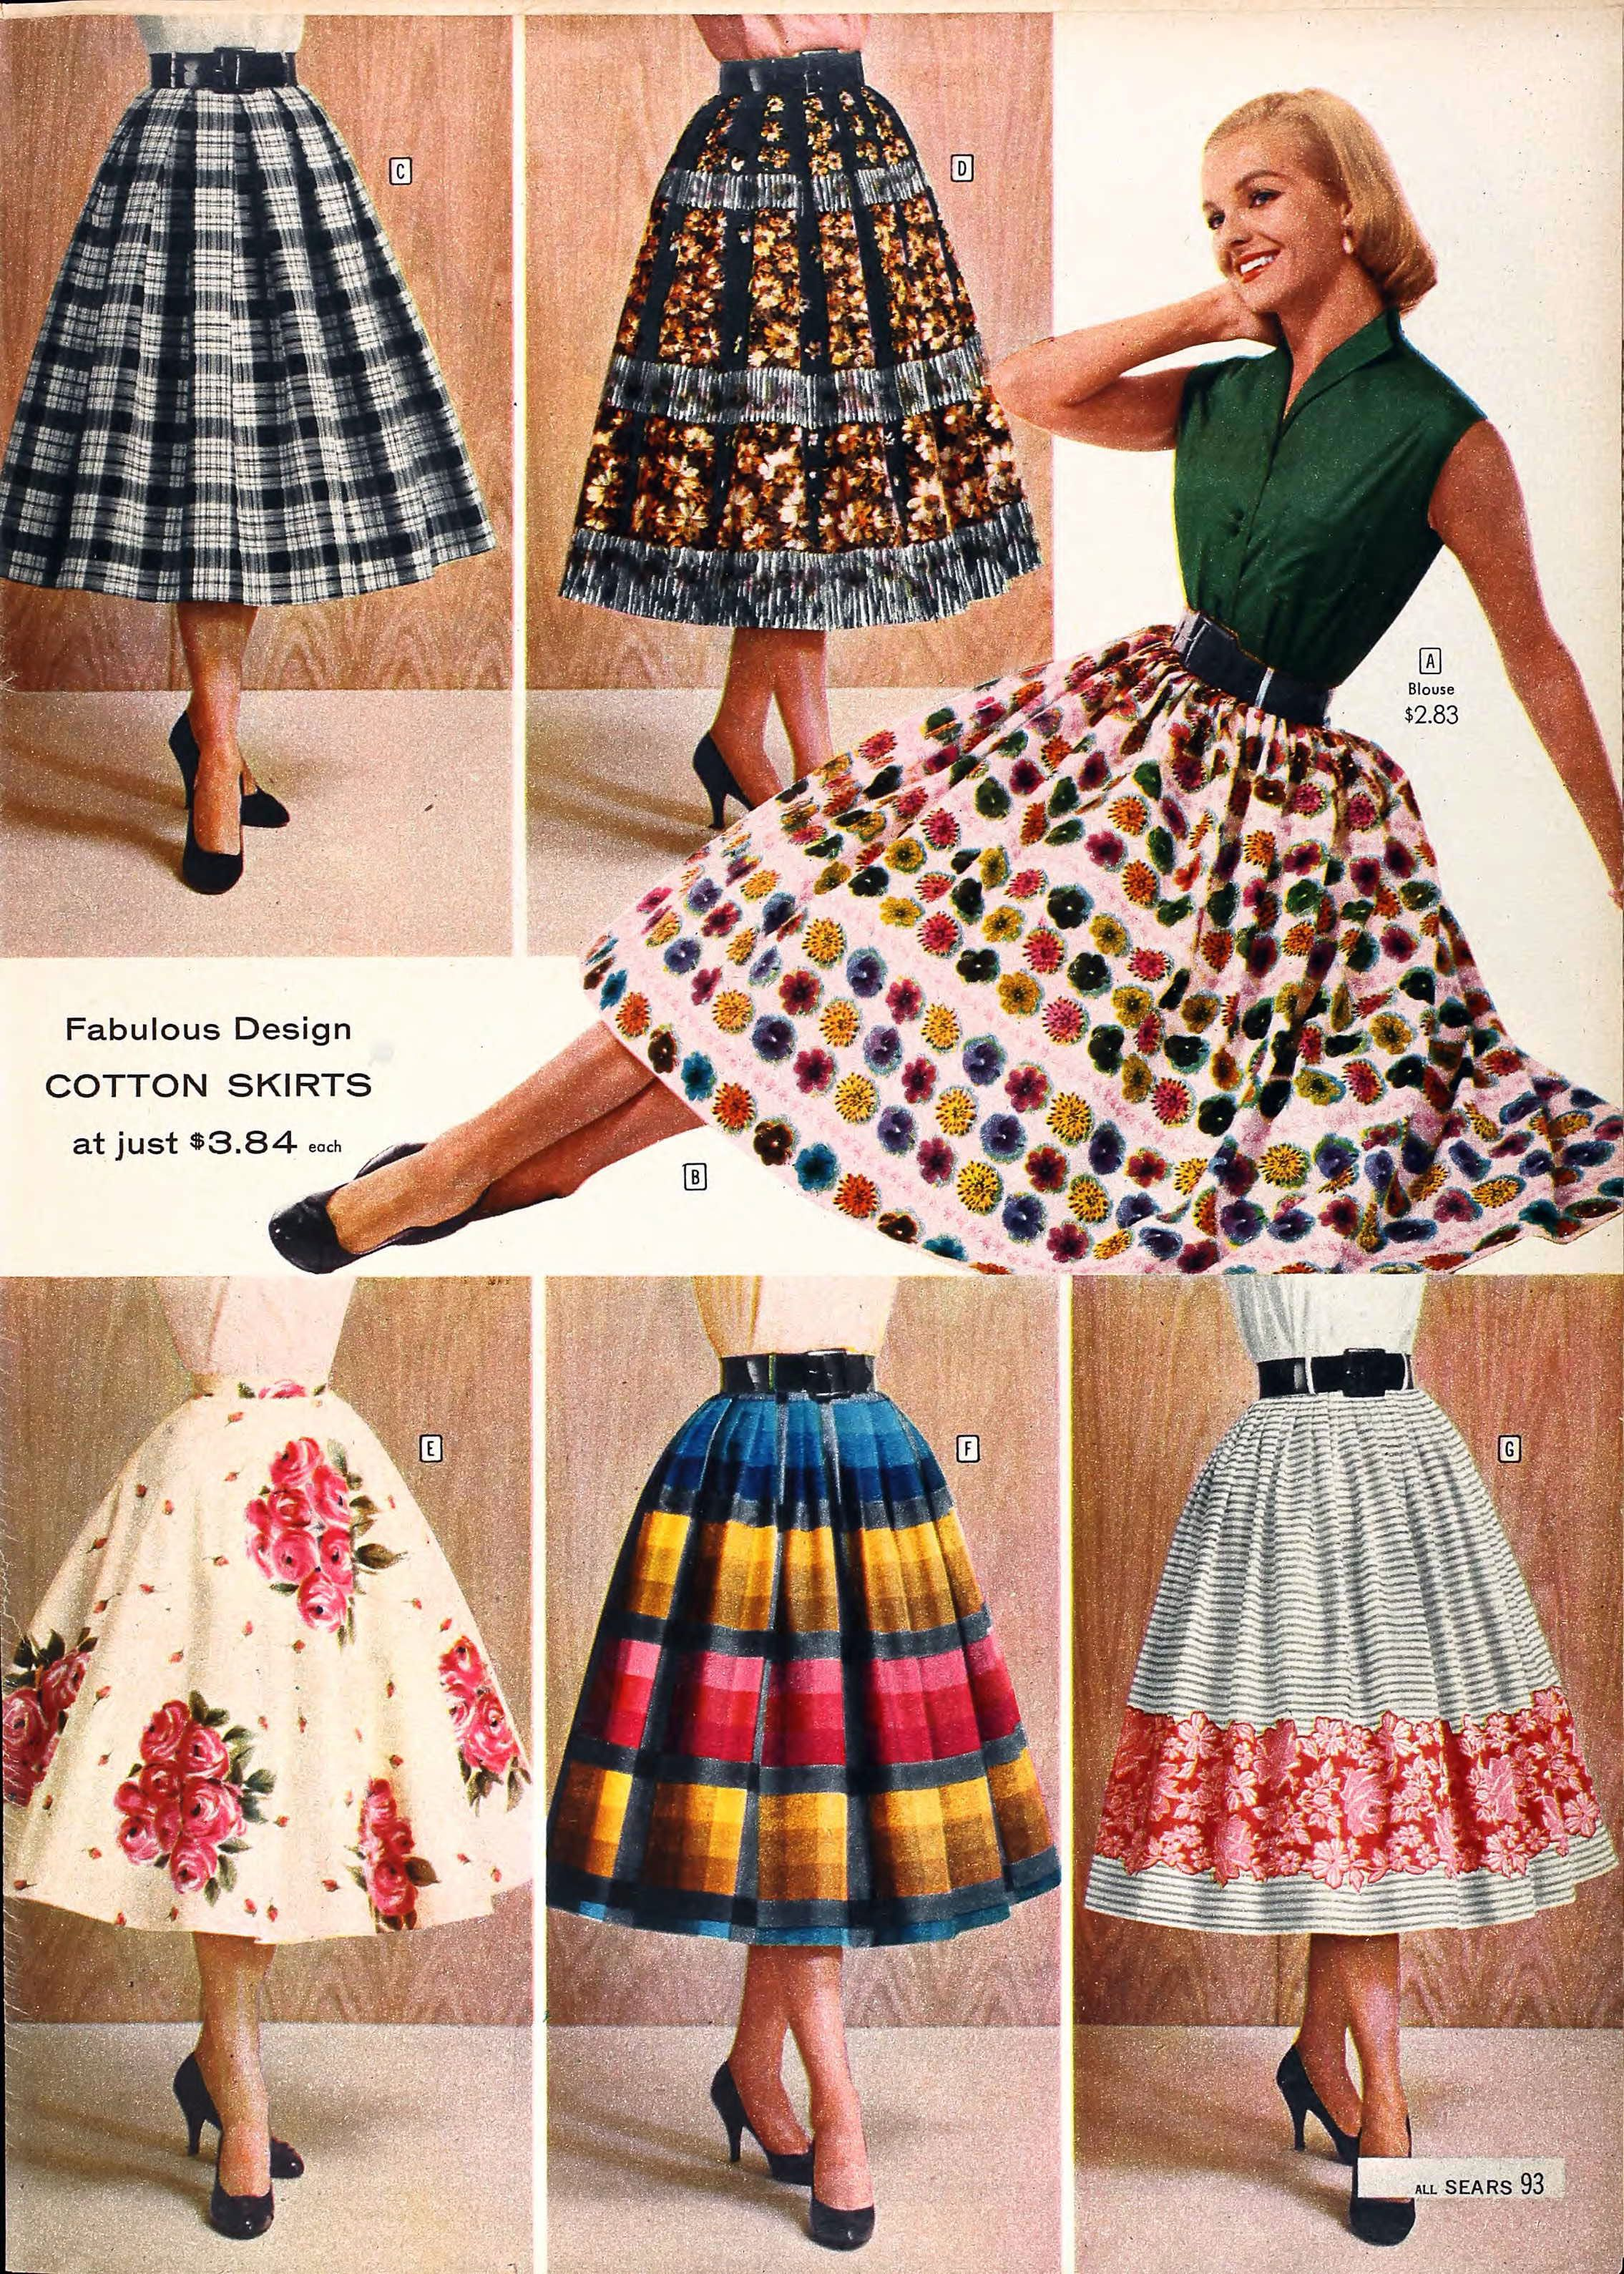 Fabulous full skirts from the Sears catalog 403edd3e138e